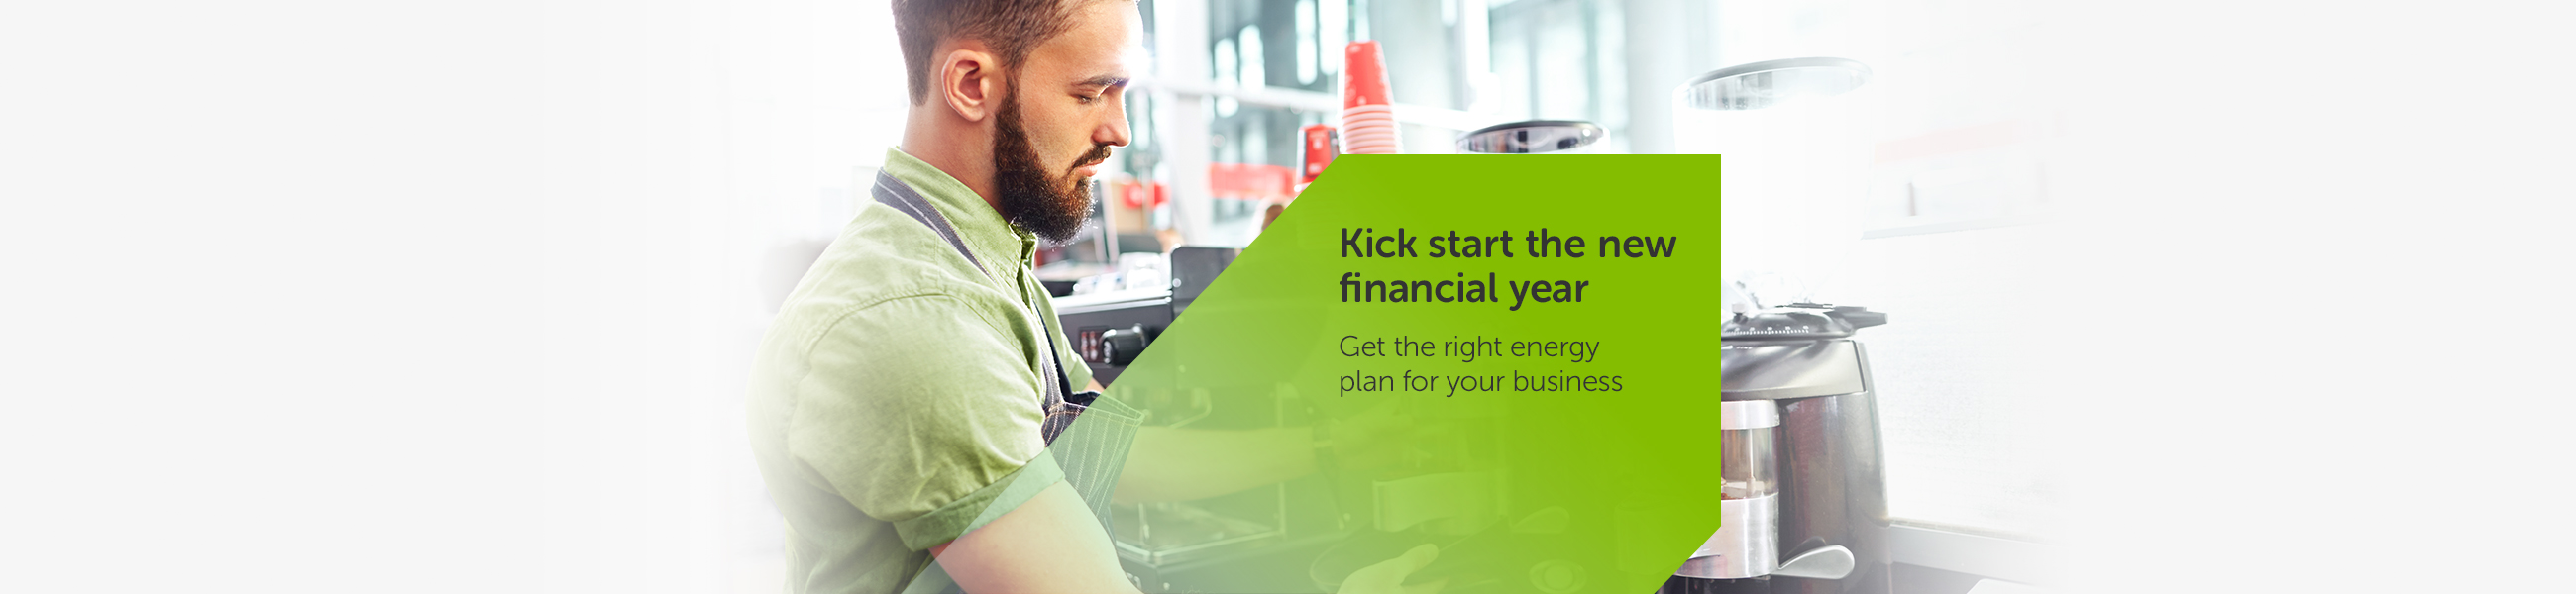 Kick start the new financial year